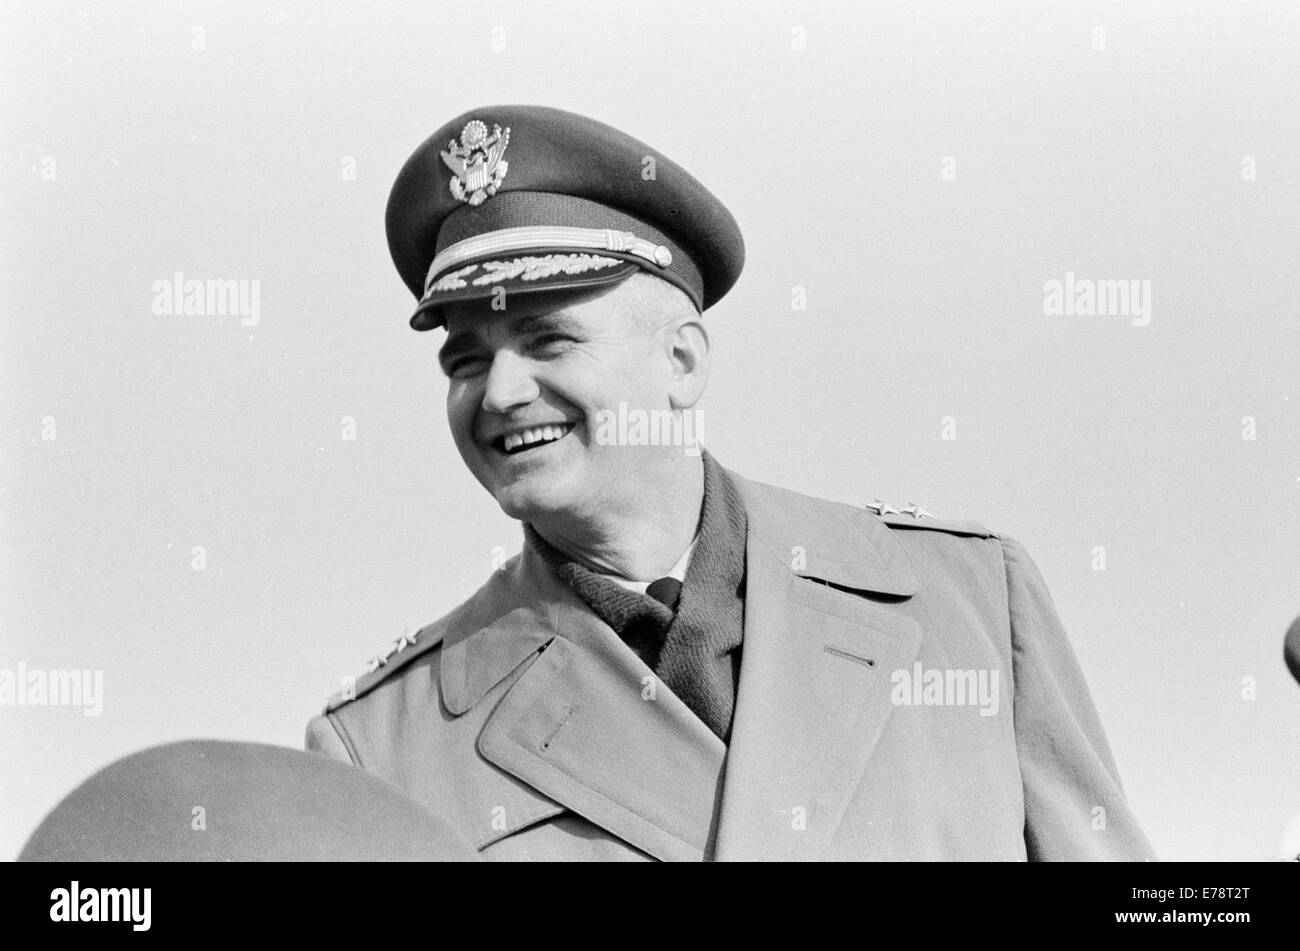 Military Officer at Army-Navy Football Game, Philadelphia - Stock Image